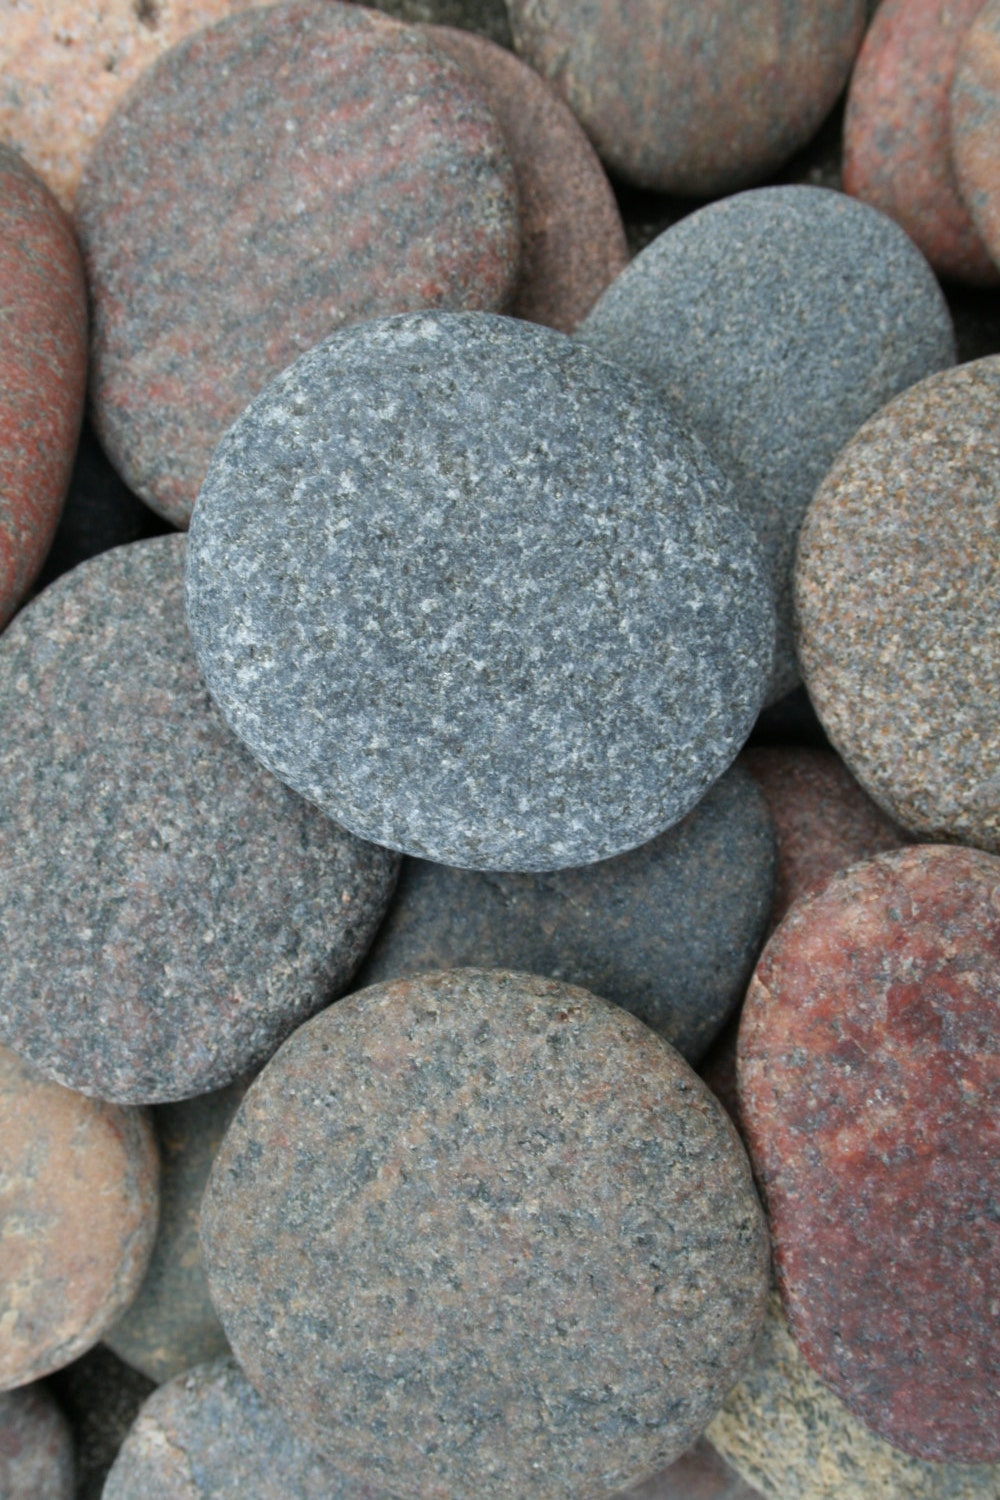 Flat pebbles for crafts - 40 Large Flat Beach Stones Flat Sea Stones Wedding Stones Wishing Stones Wedding Guest Book